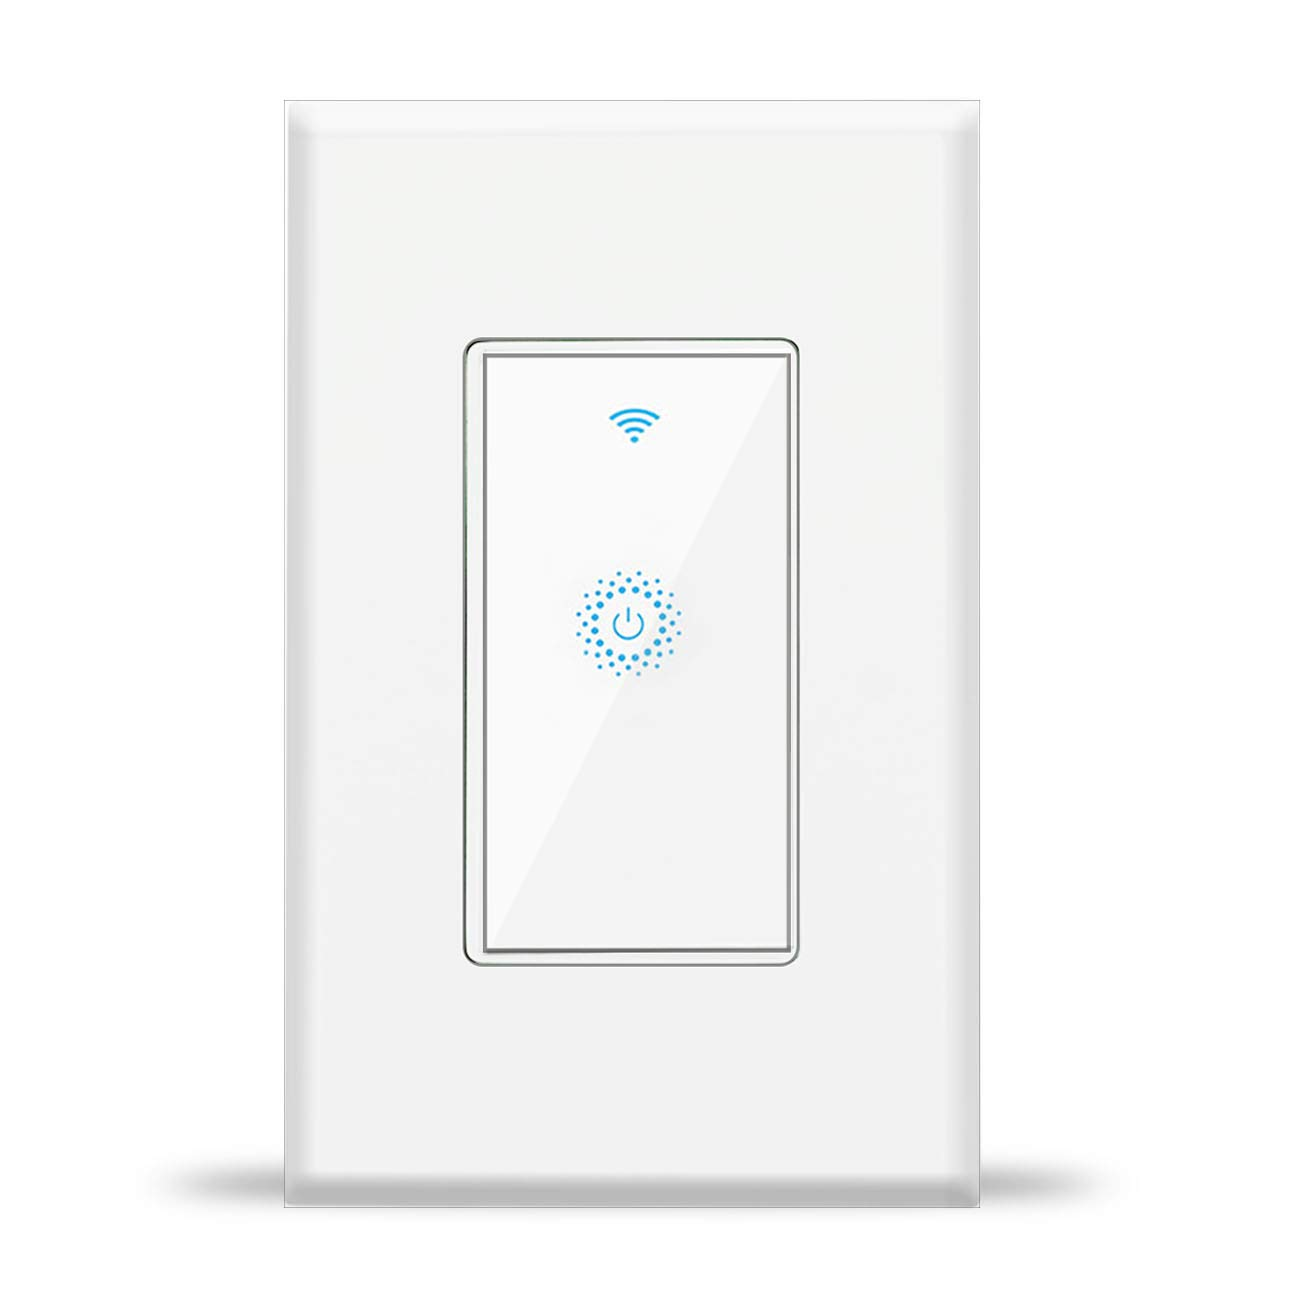 WiFi Light Switch,Remote Control Smart Switch,Work with Alexa,Google Home,IFTTT,Need White Neutral wire, No hub